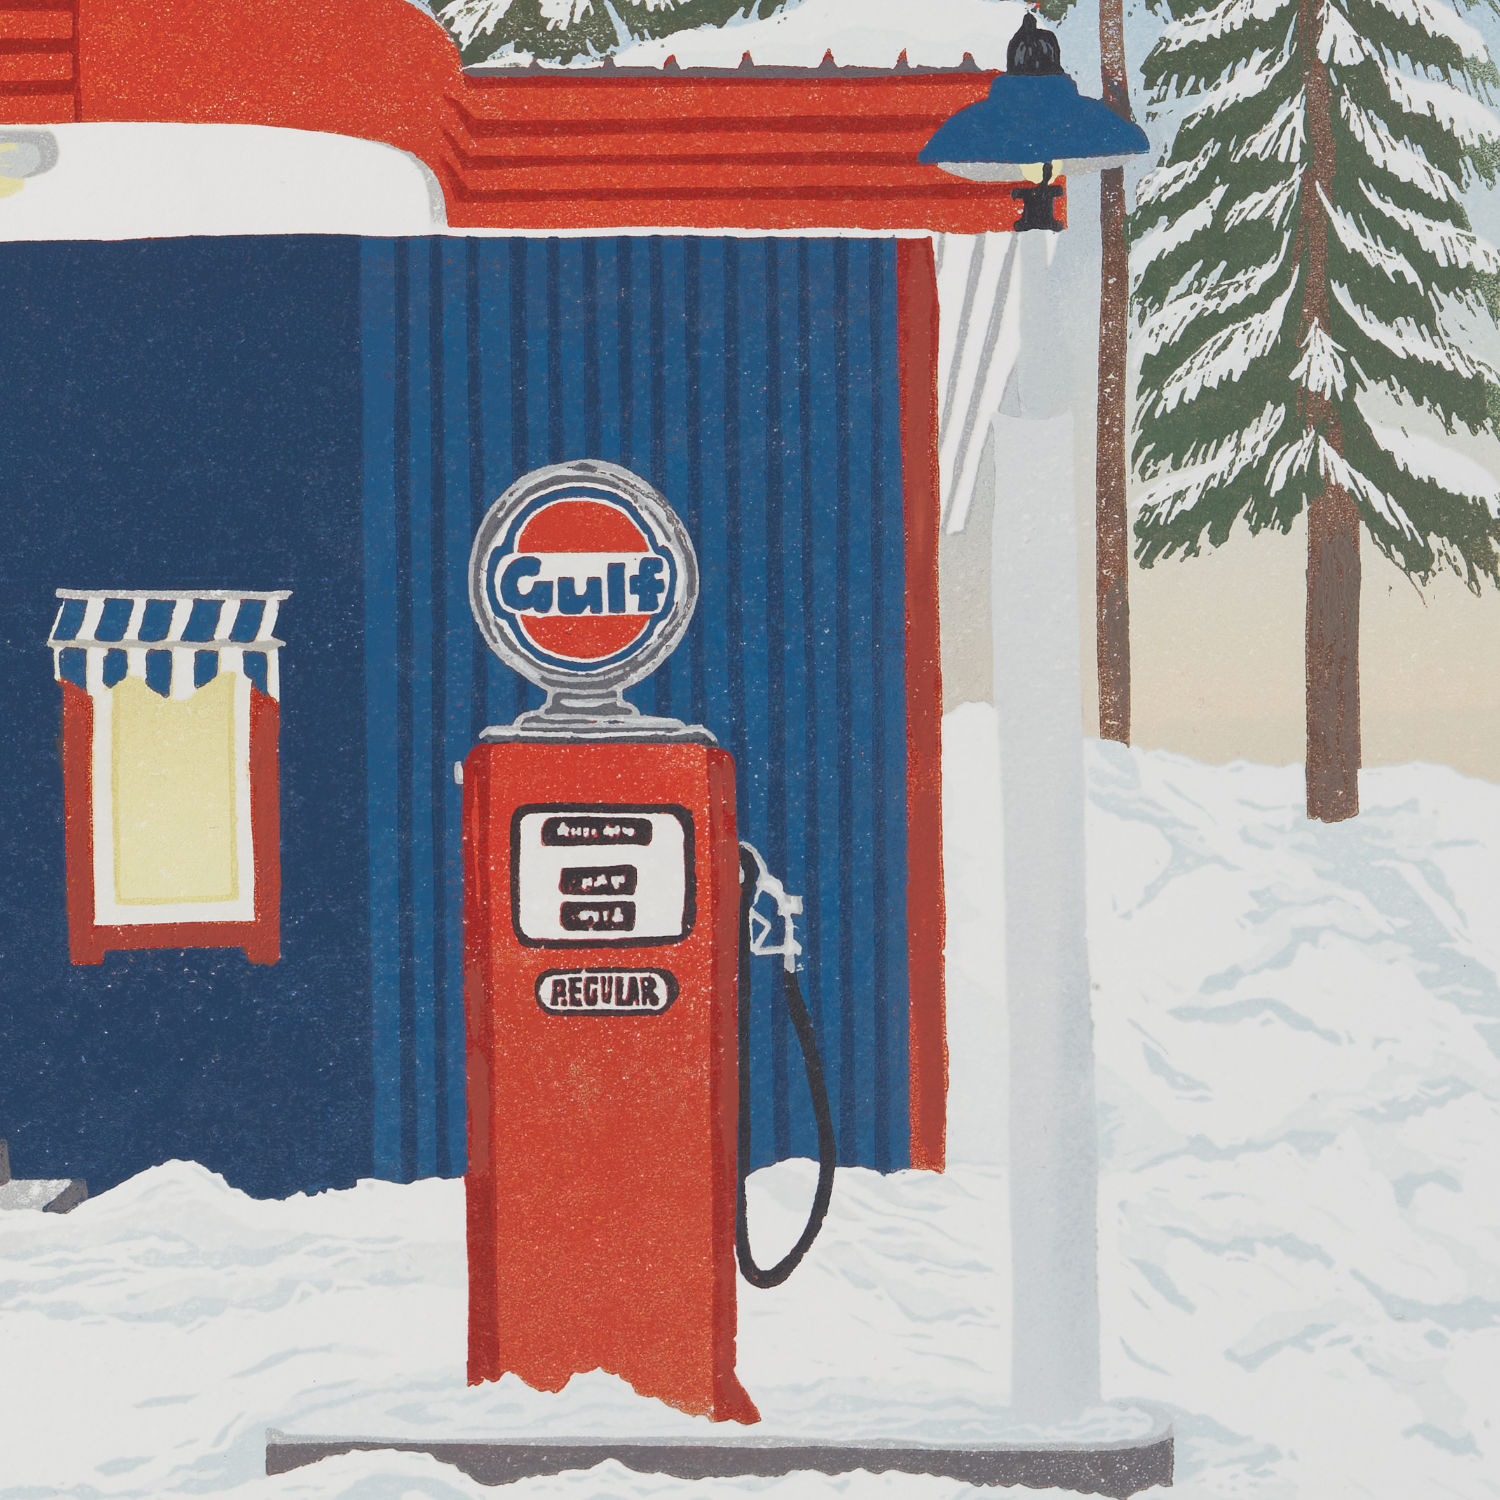 Vintage Gulf Oil Gas Station Pump Print | The Enlightened Hound